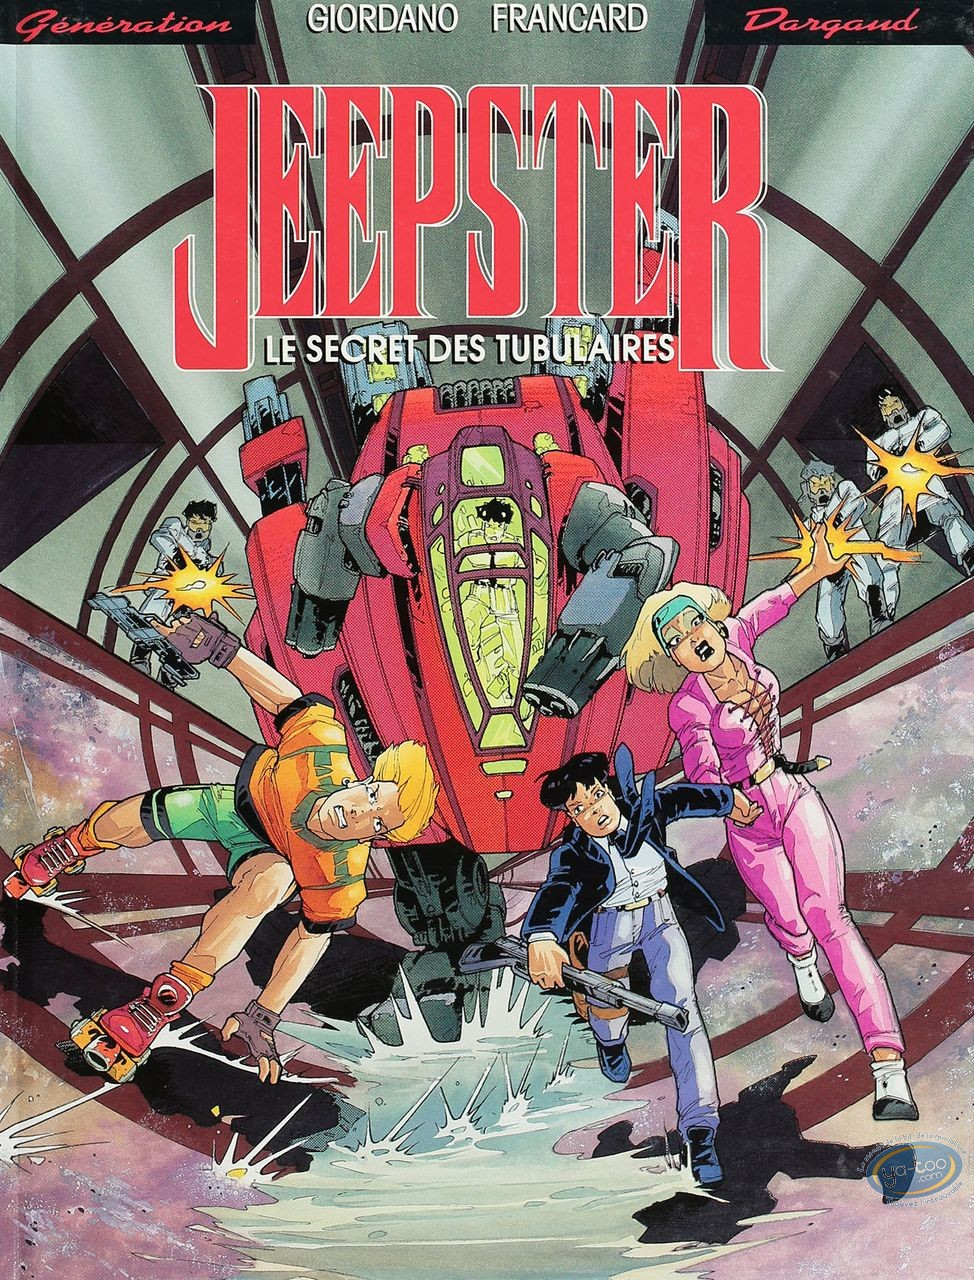 Listed European Comic Books, Jeepster : Le secret des tubulaires